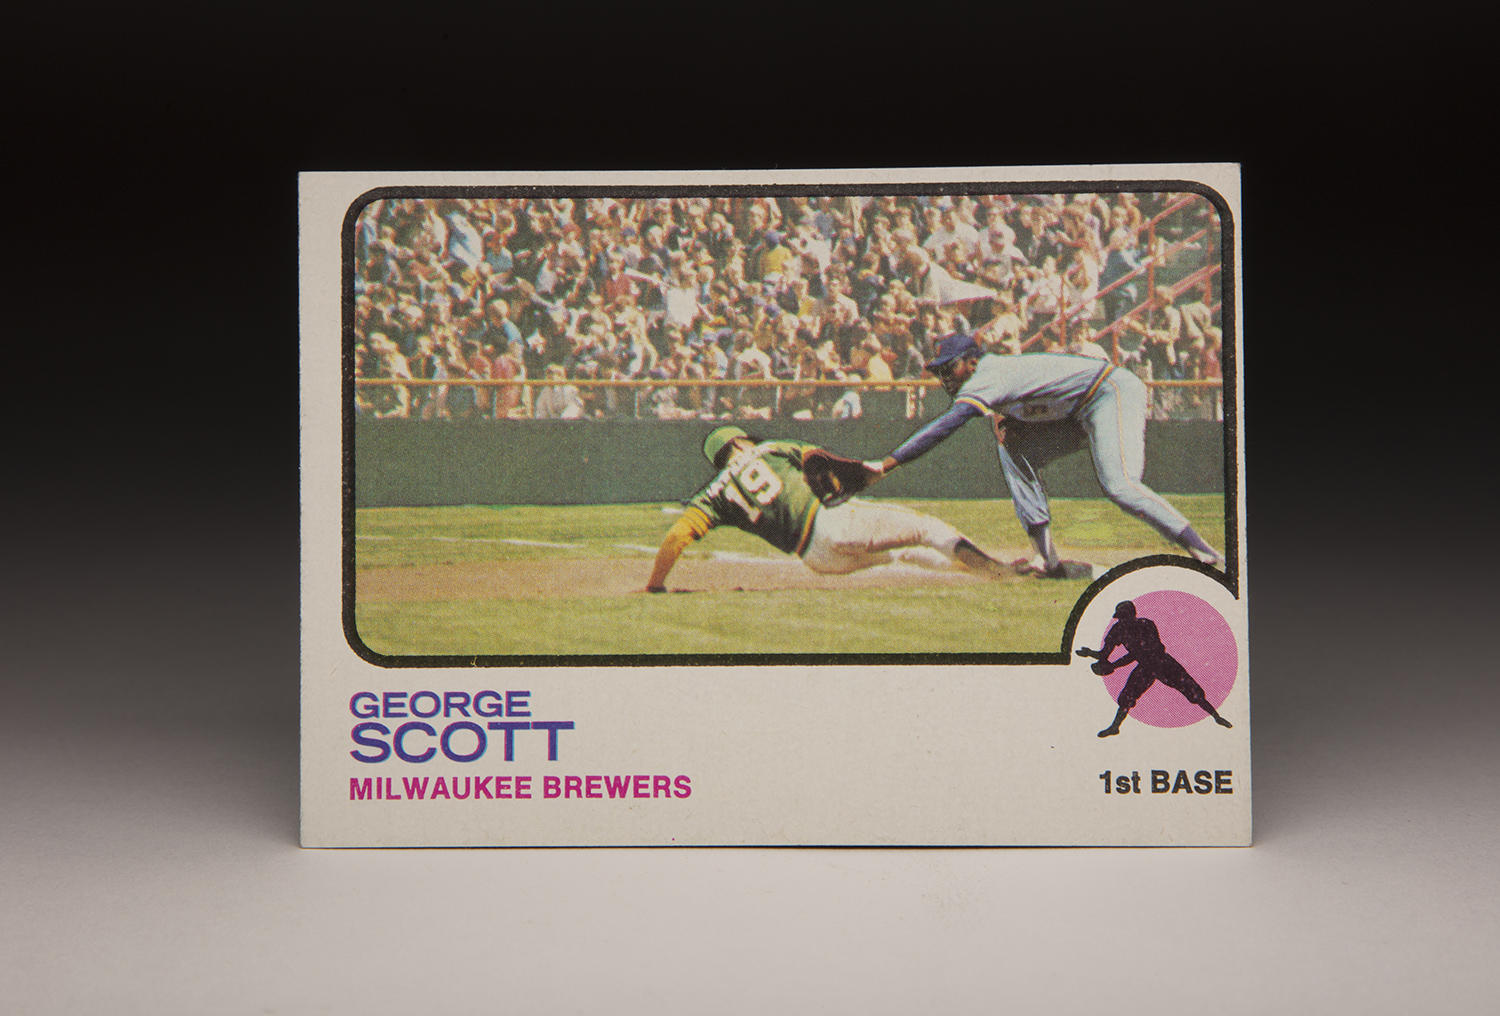 On George Scott's 1973 Topps card, two different photos appear to have been pasted together to create an image of the Oakland Coliseum. (Milo Stewart Jr./National Baseball Hall of Fame and Museum)